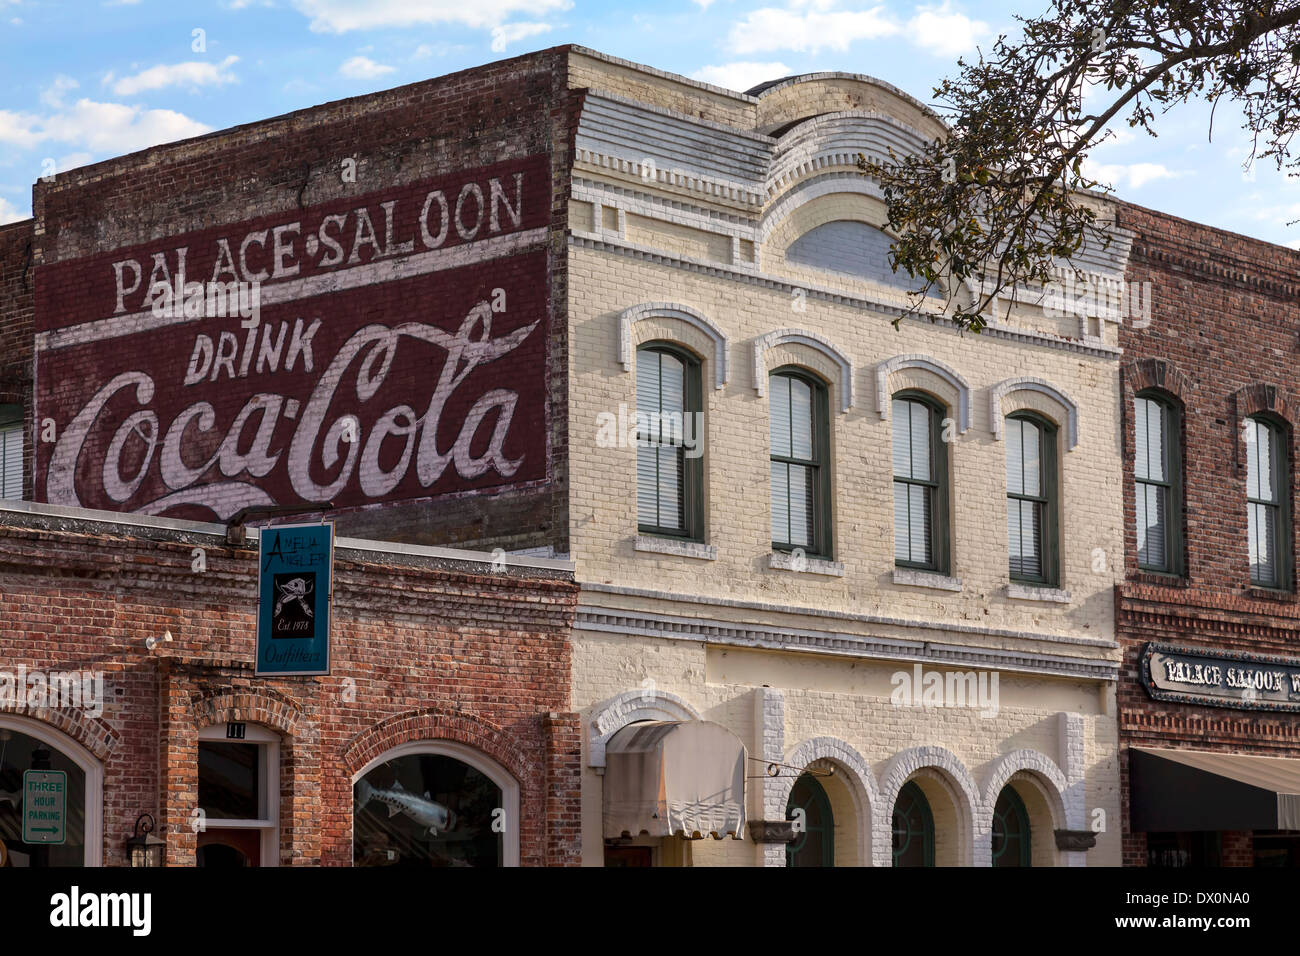 Hand Painted Coca Cola Sign On Exterior Brick Wall Of Old Building In Historic Downtown